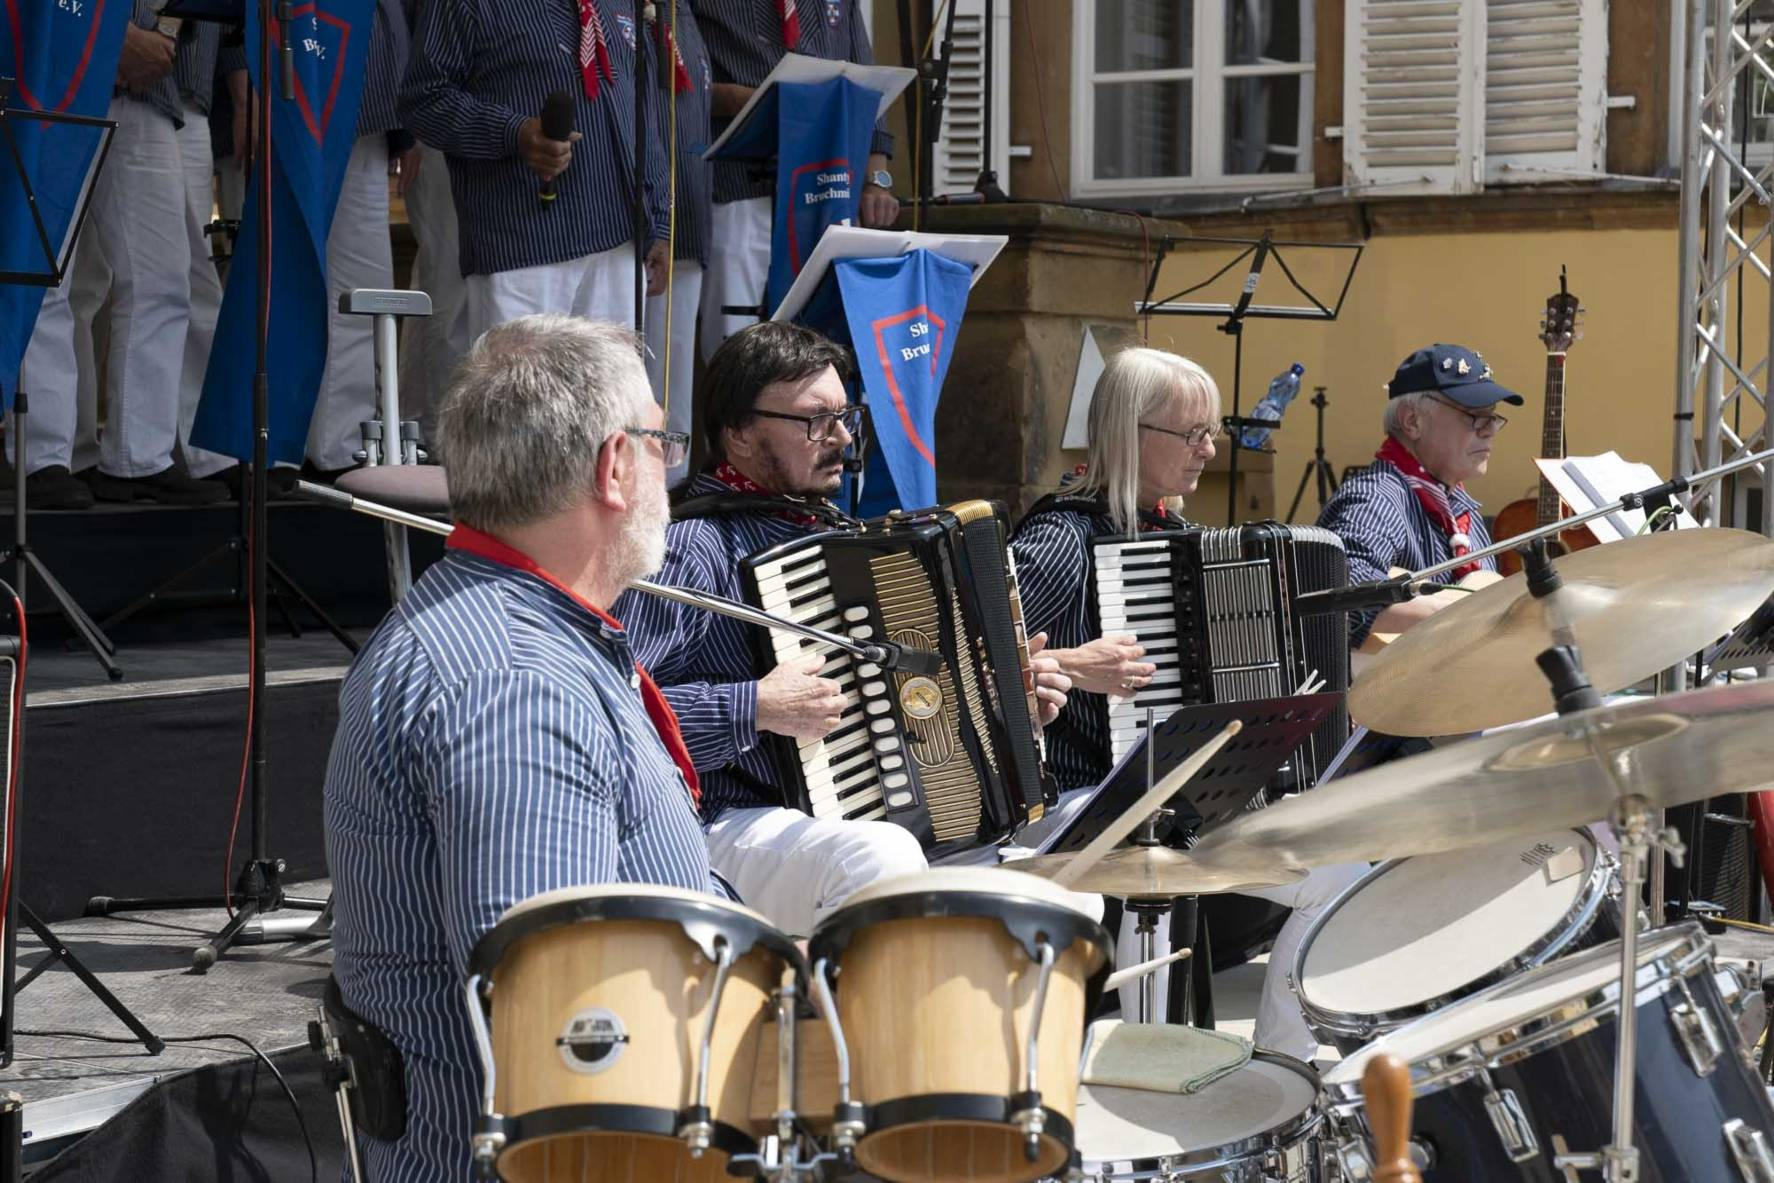 Sailorband in Diestedde